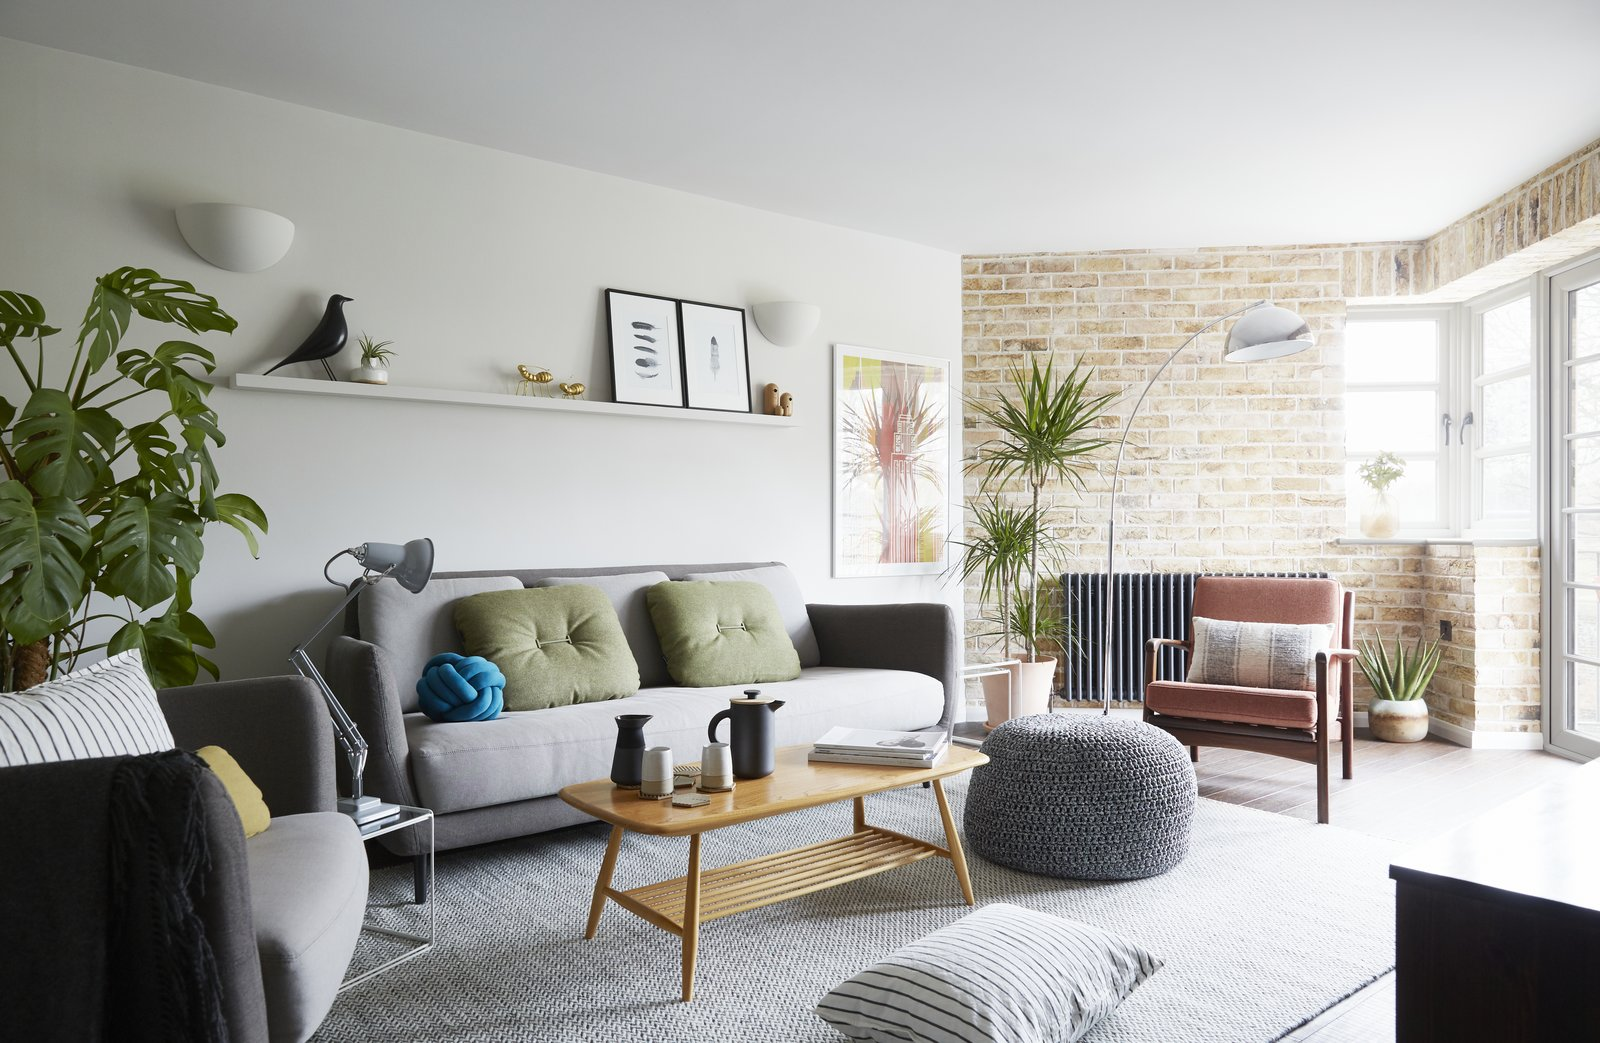 Living, Floor, Sofa, Coffee Tables, Bamboo, Shelves, Table, Lamps, Chair, Rug, and End Tables The light-filled living room, with a London stocks brick wall, vintage mid century furnishings and modern Scandi decorative touches.  Best Living Floor Bamboo Photos from Artillery House